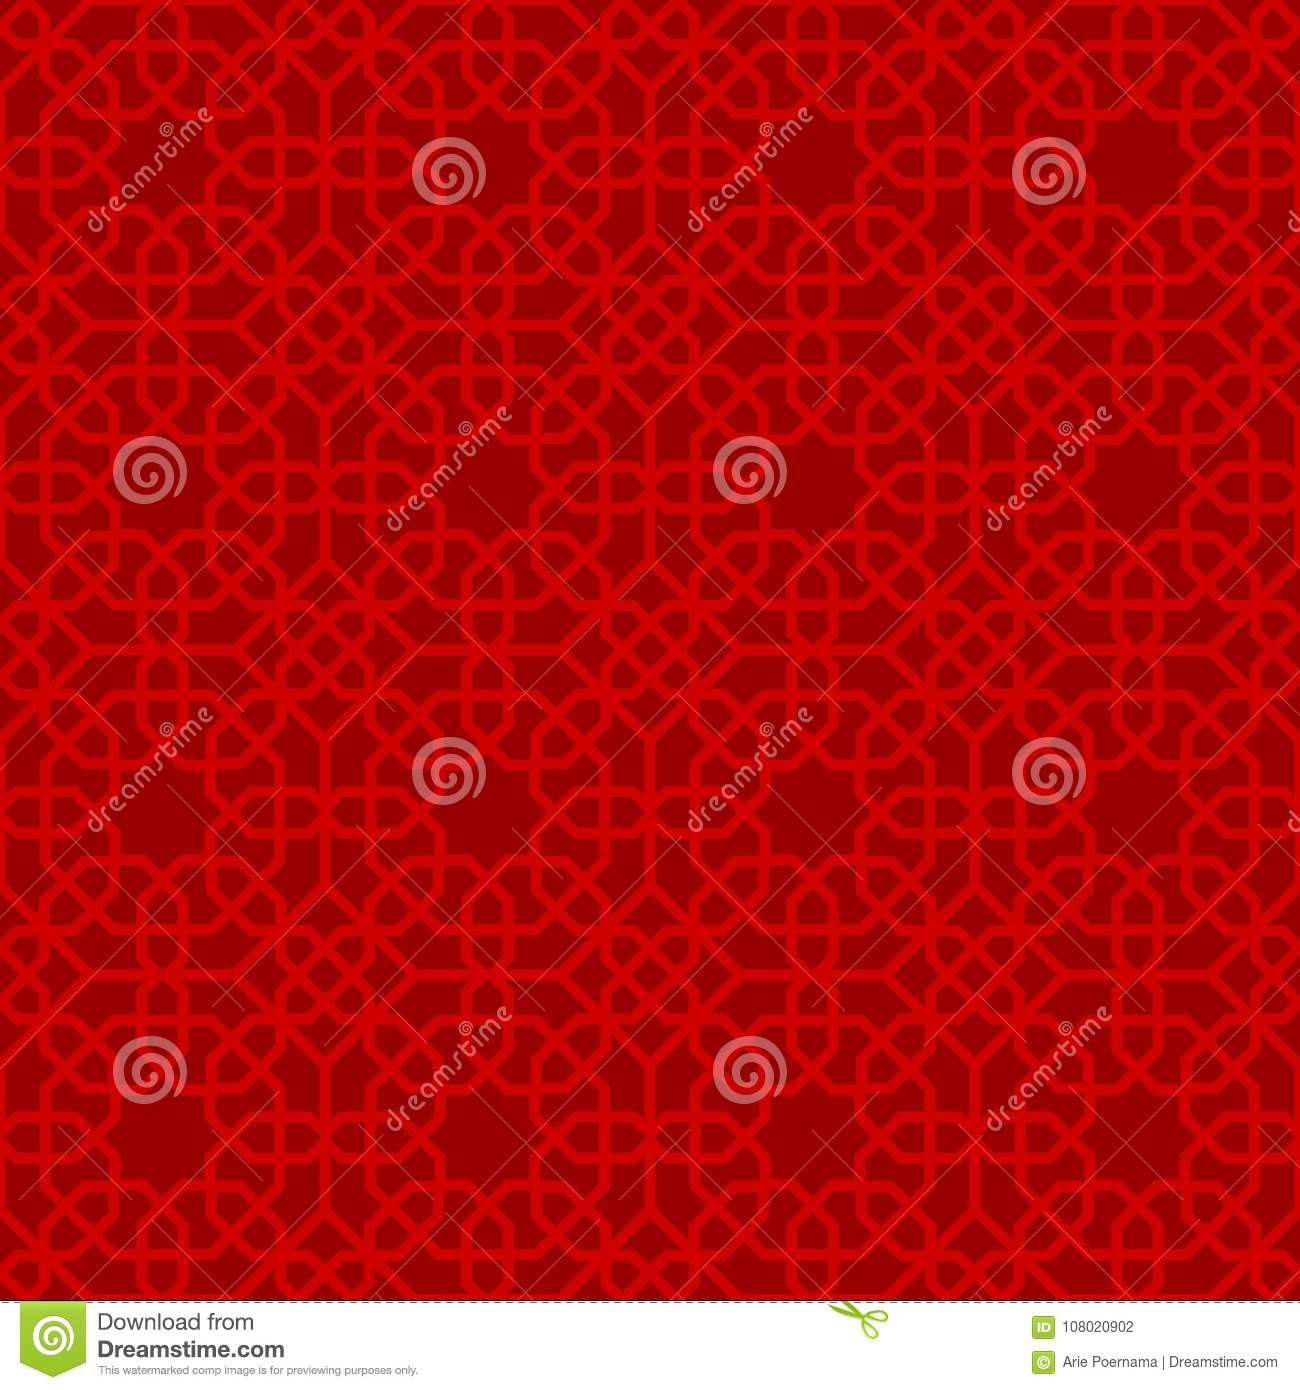 red ornament islamic pattern background illustration stock illustration illustration of shadow pattern 108020902 https www dreamstime com red ornament islamic pattern background illustration red ornament islamic pattern background illustration any purpose books image108020902